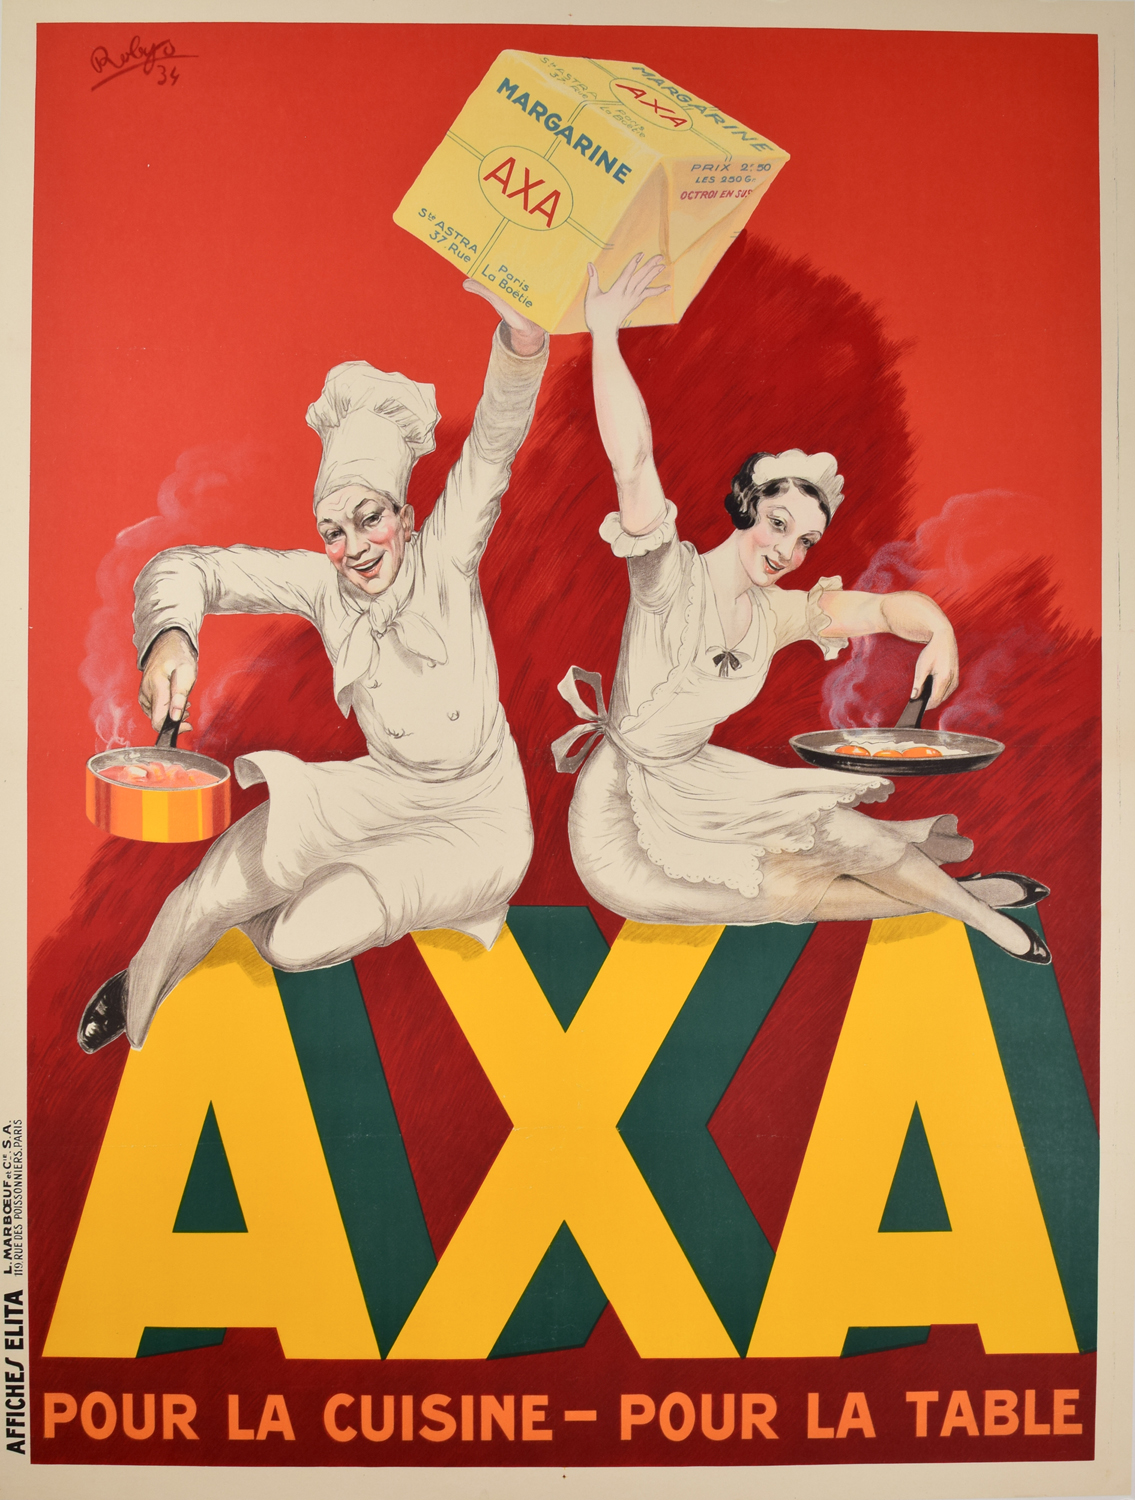 Affiche Deco Cuisine Axa Margarine French Art Deco Poster By Robys Modernism